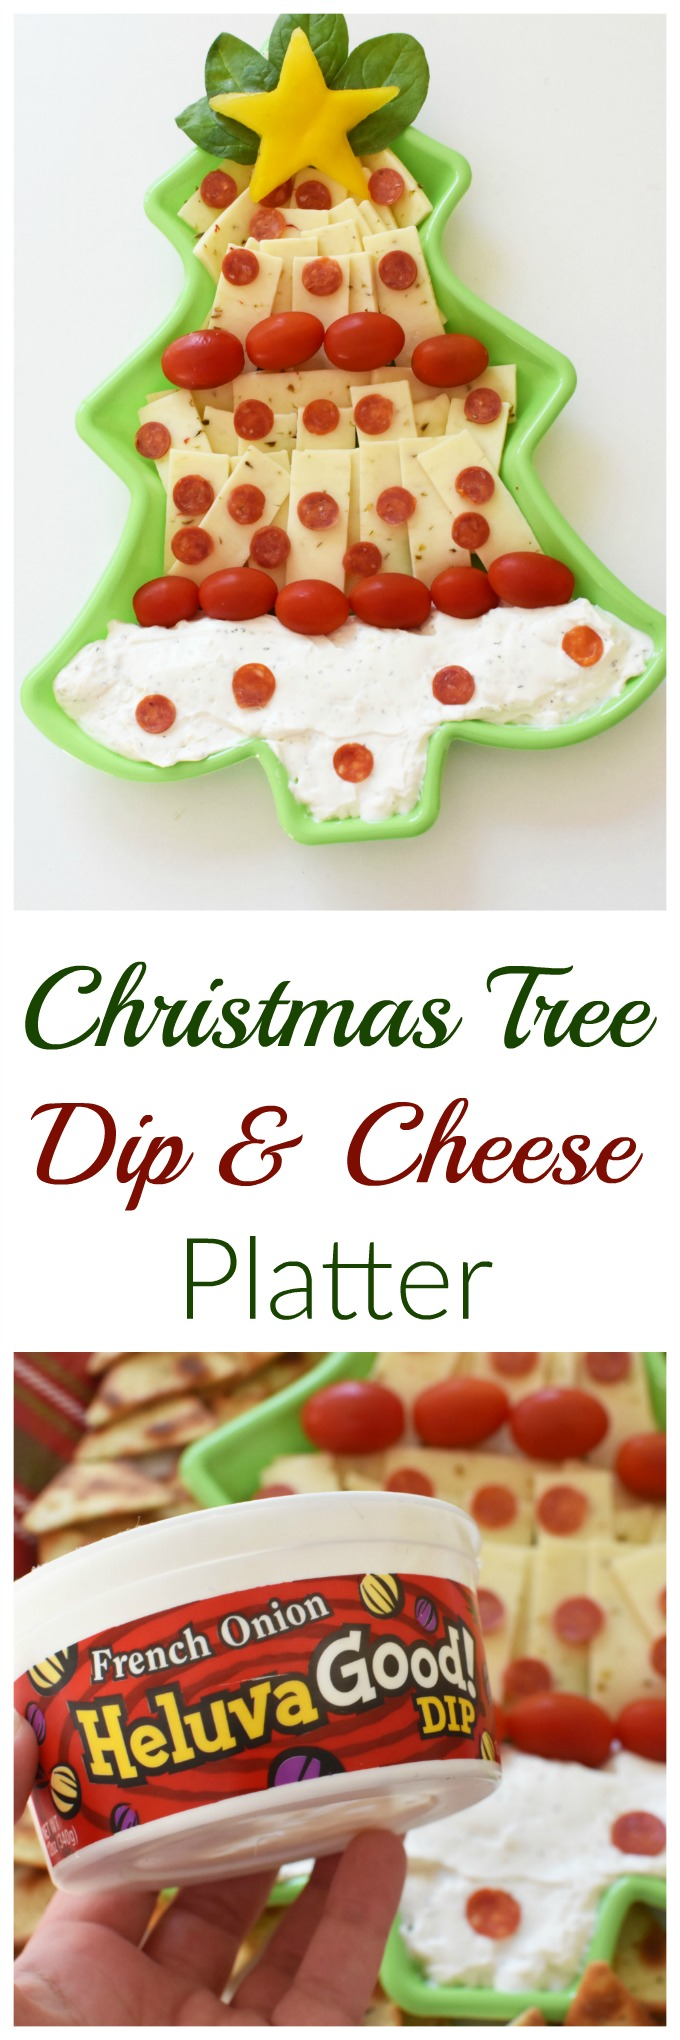 Christmas Tree Dip & Cheese Platter - A fun and easy way to entertain, this edible Christmas Tree platter features cheese, dip, veggies, and can be assembled in under 15 minutes!#ChipsDipsandTips